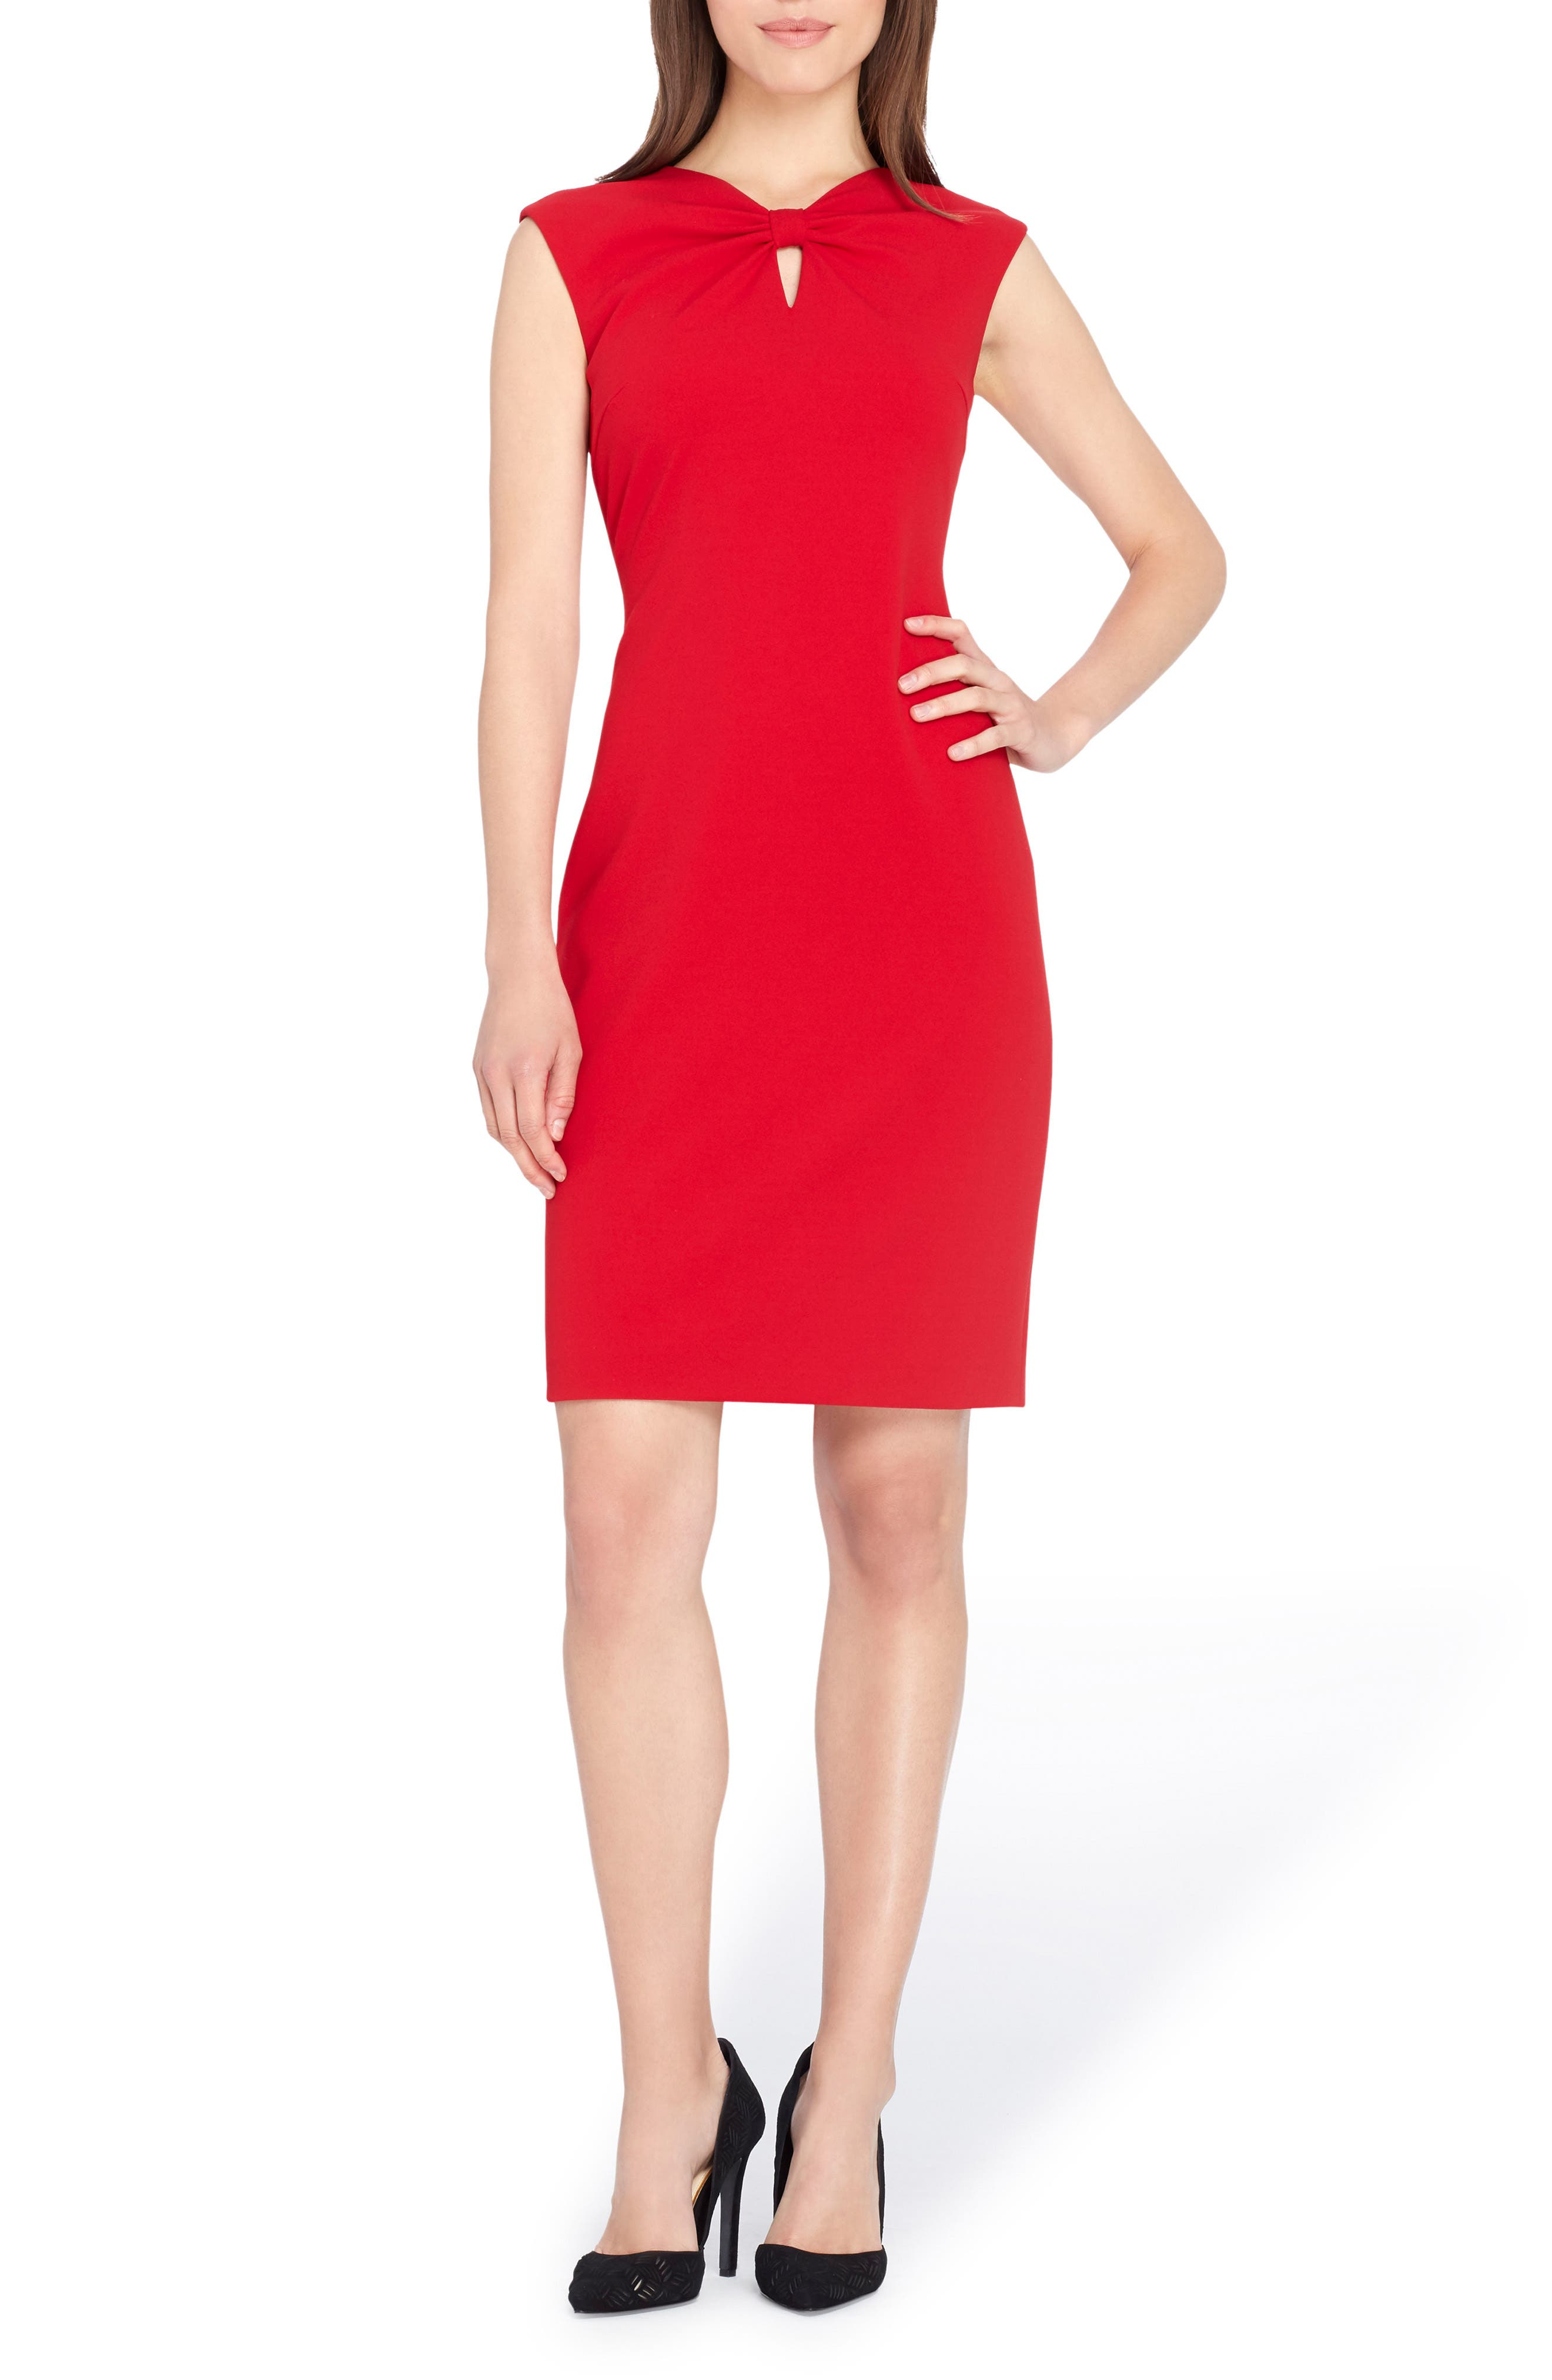 Alternate Image 1 Selected - Tahari Knotted Scuba Sheath Dress (Regular & Petite)